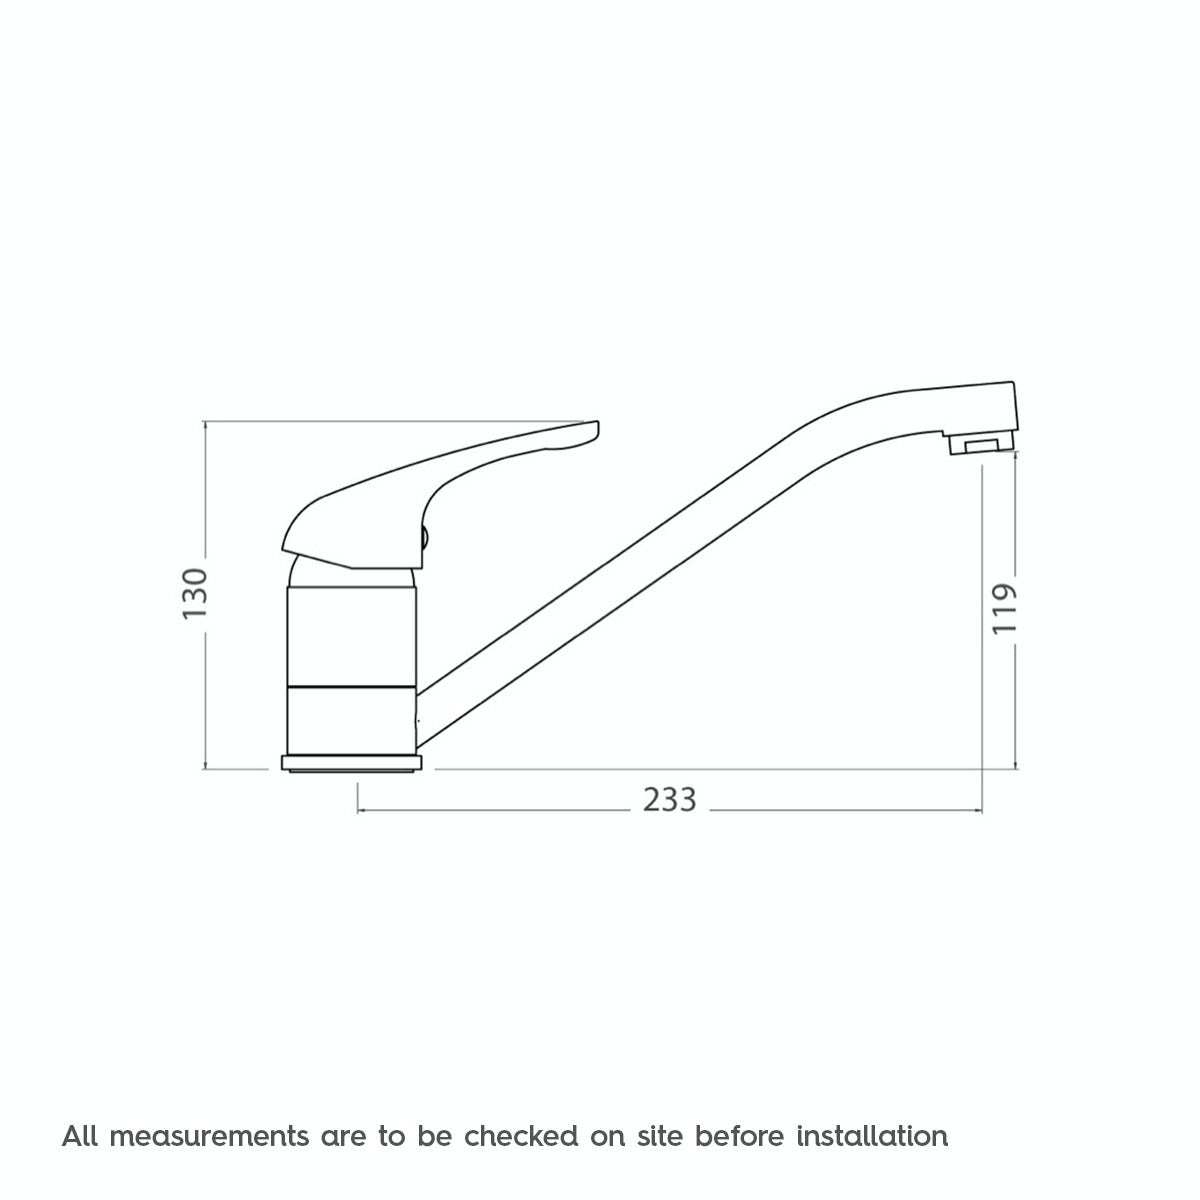 Dimensions for Clarity kitchen tap